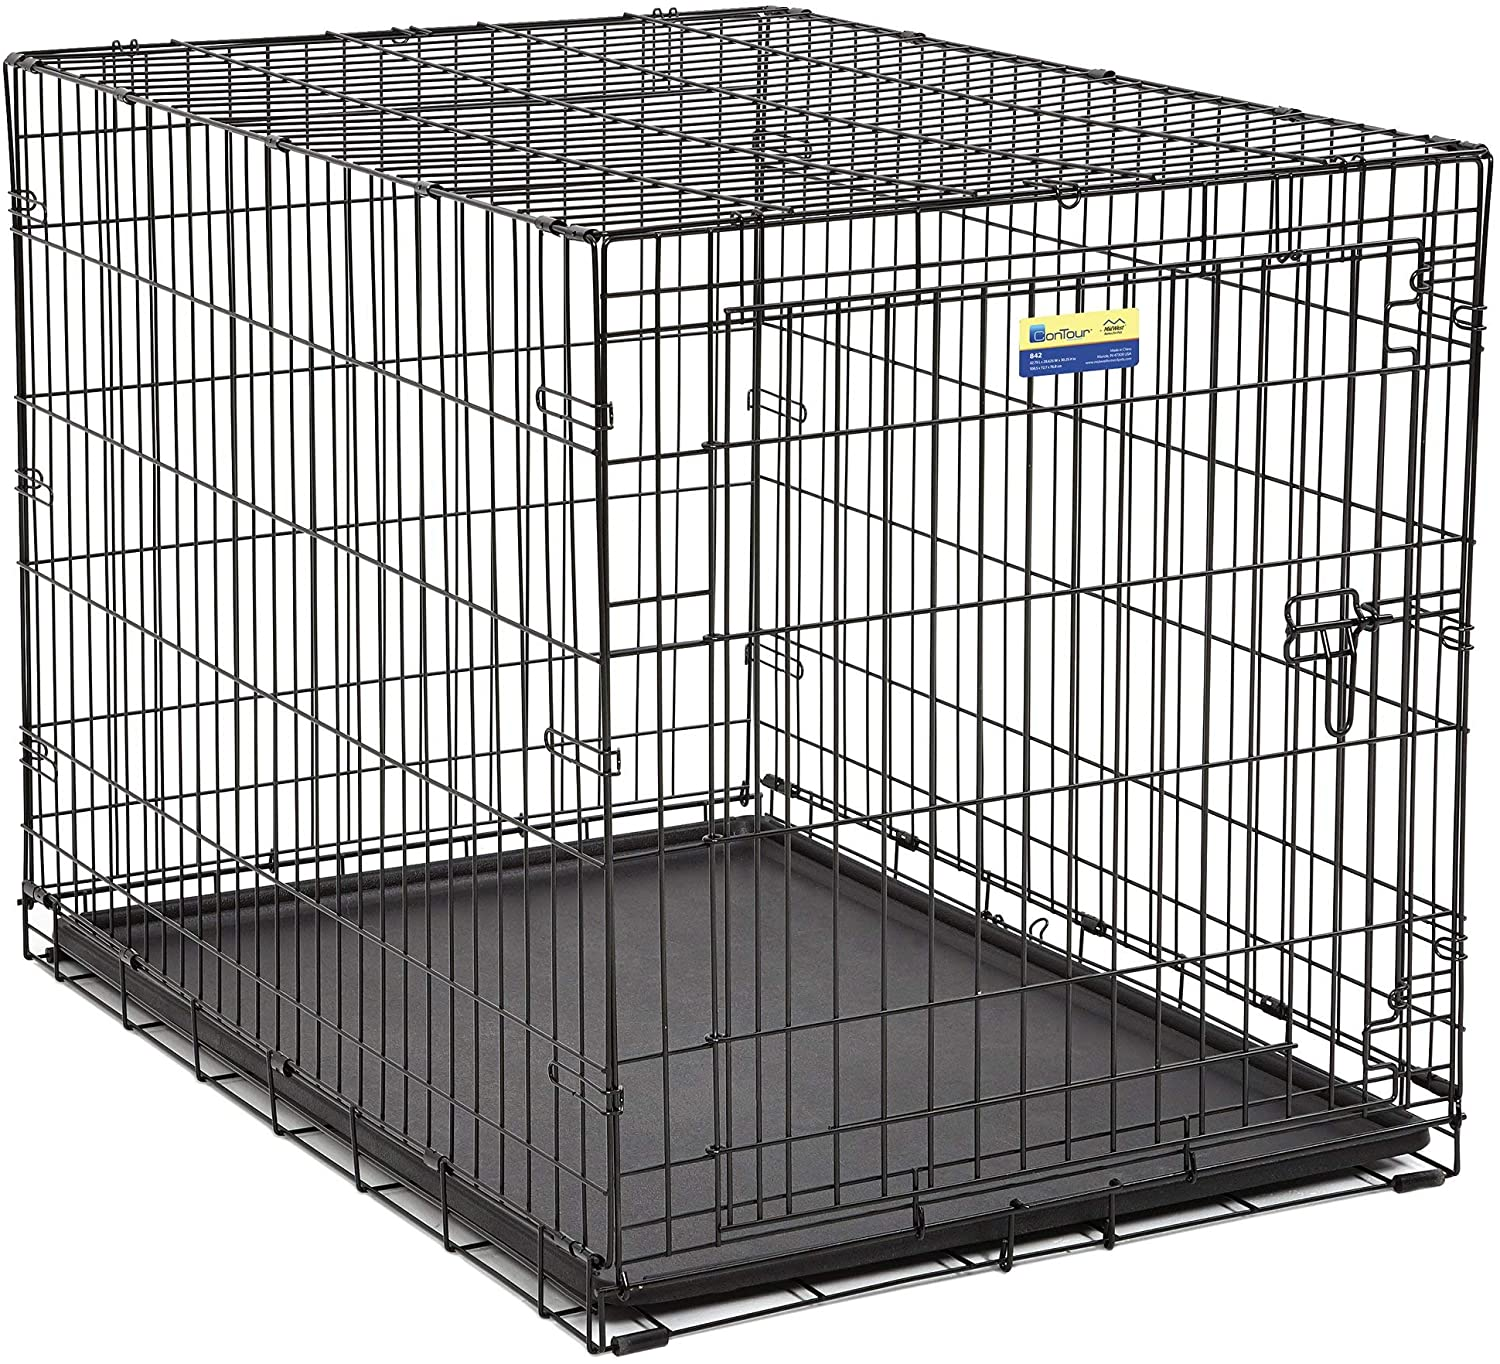 Midwest Crate Contour Single Door Dog Crate, 42-in